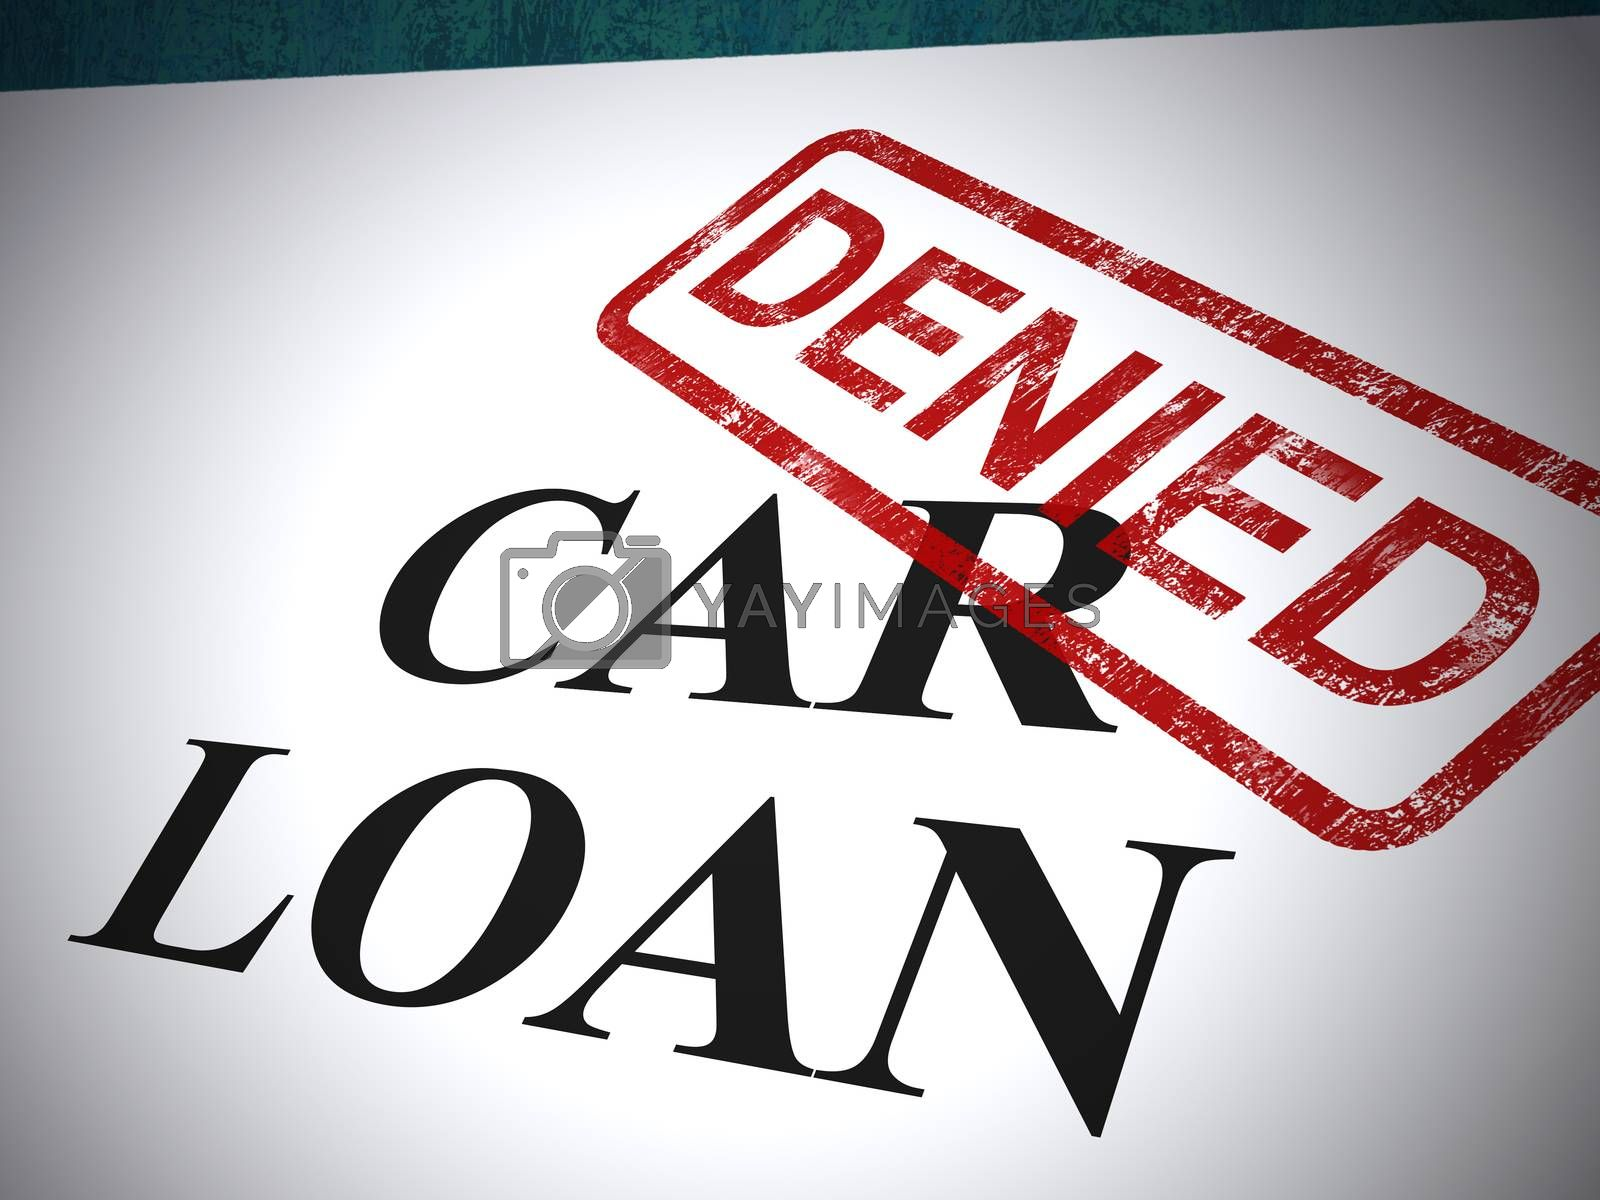 Car loan application denied stamp shows rejection of auto finance. A line of credit or lease document - 3d illustration